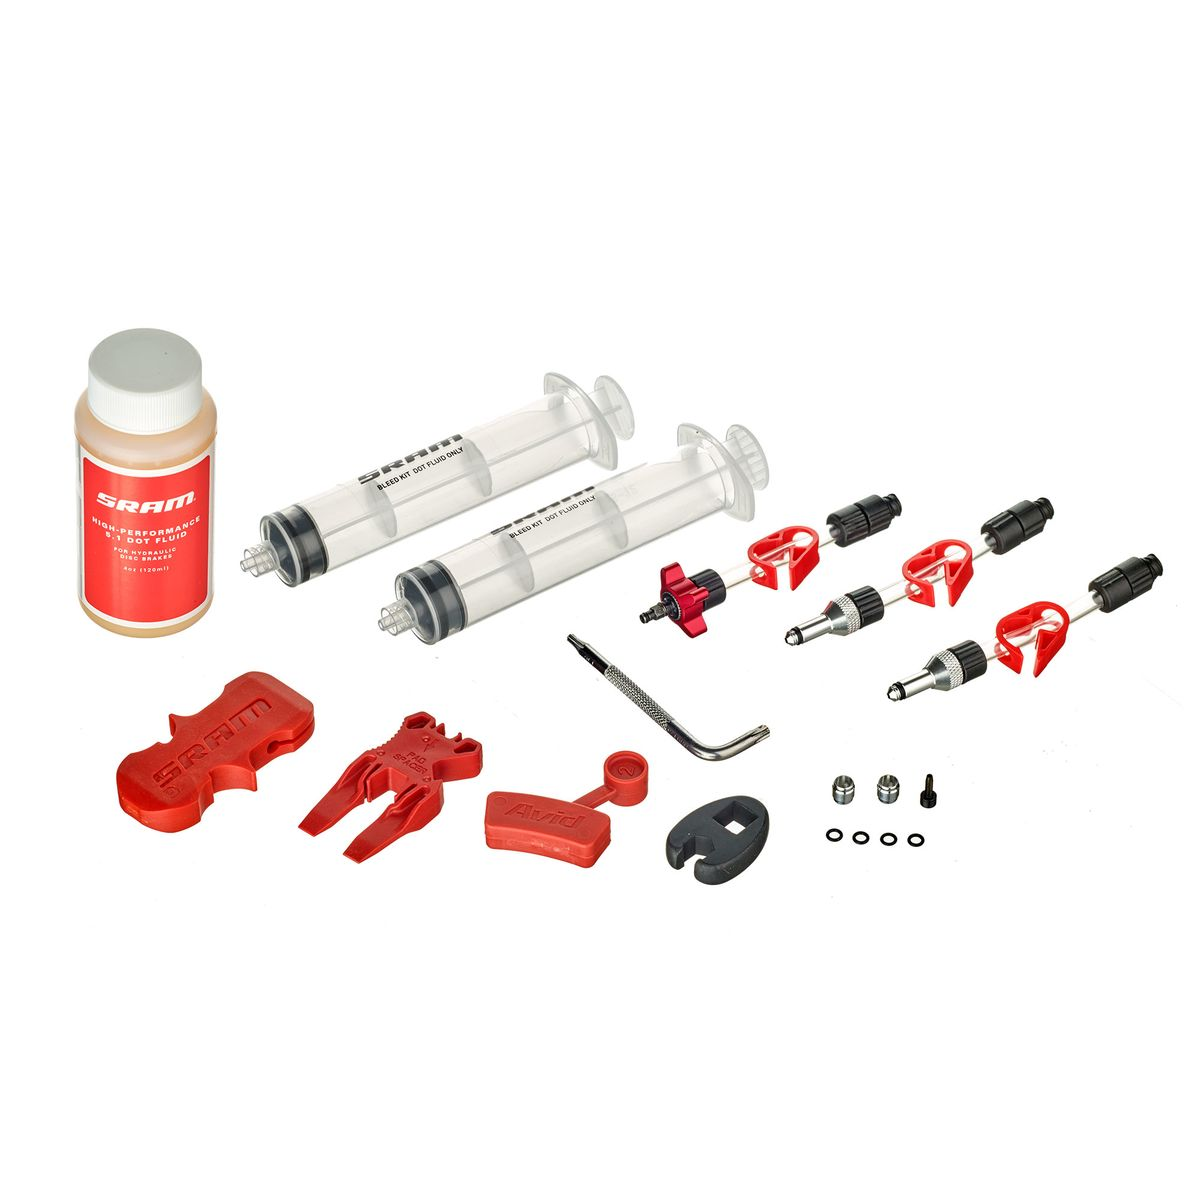 Sram Standard bleeding kit (incl. Dot 5.1 braking fluid)